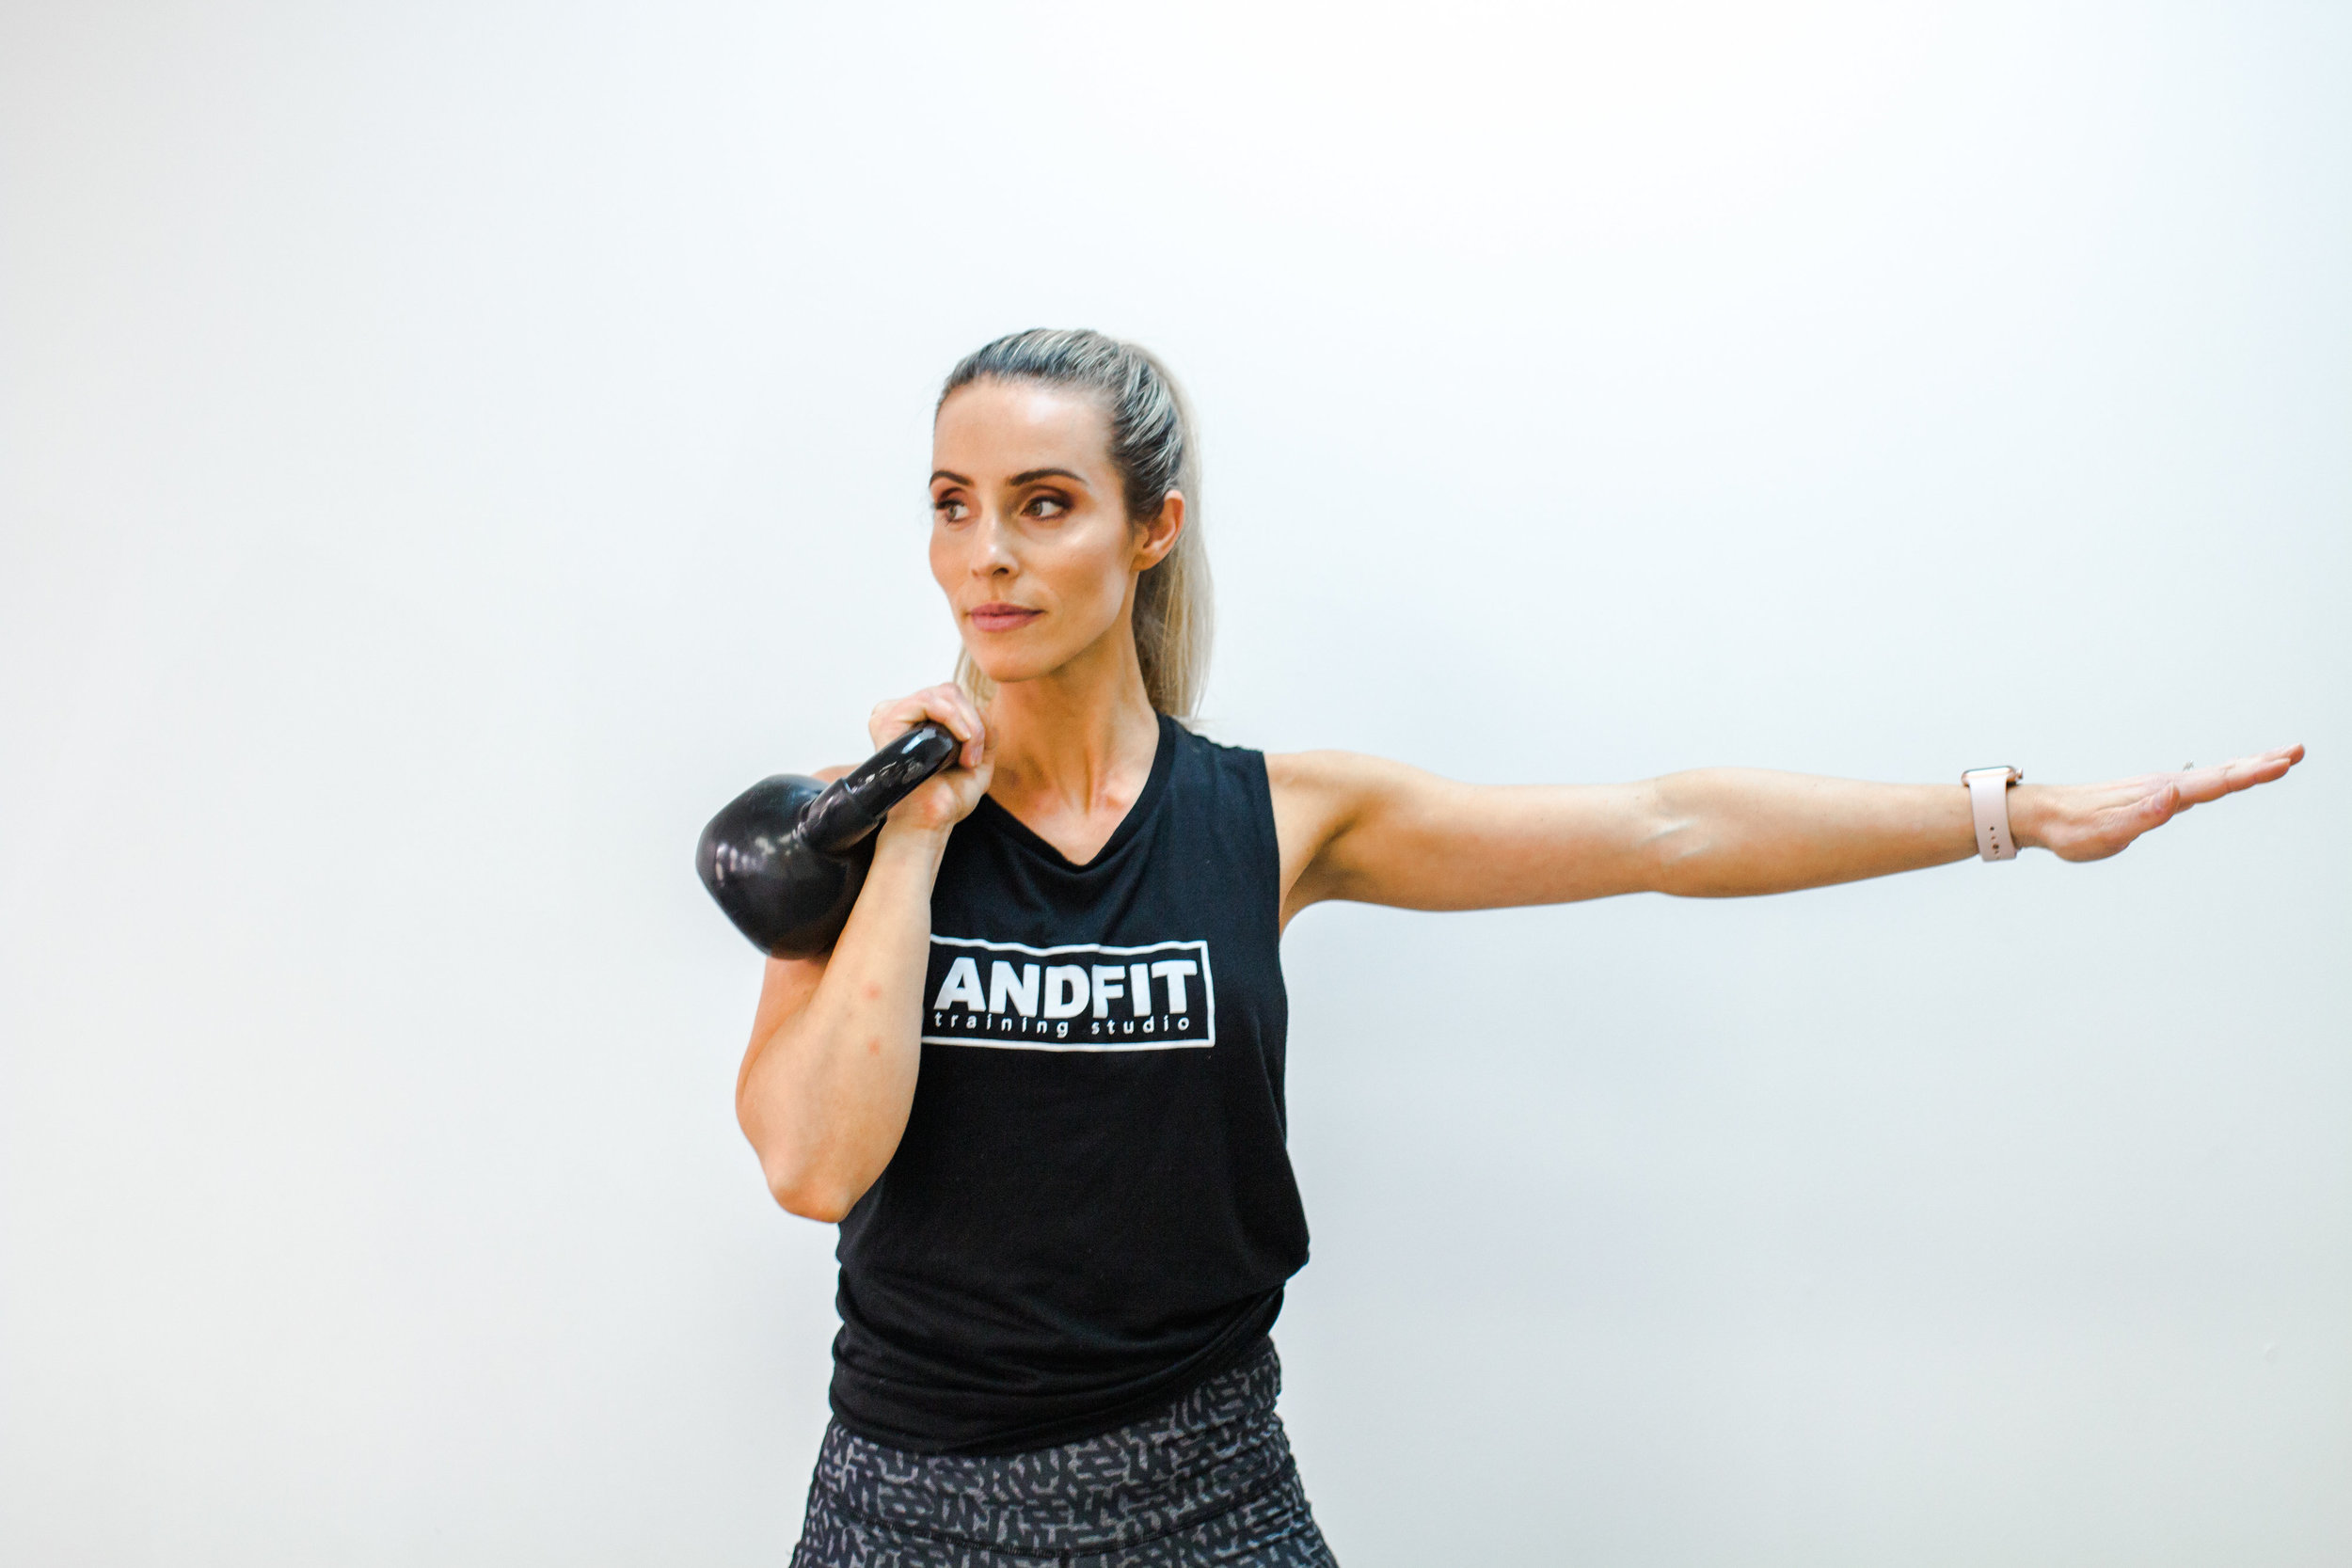 Andrea Merucci Hsiung, PTS, PFS OWNER, ANDFIT Personal Trainer